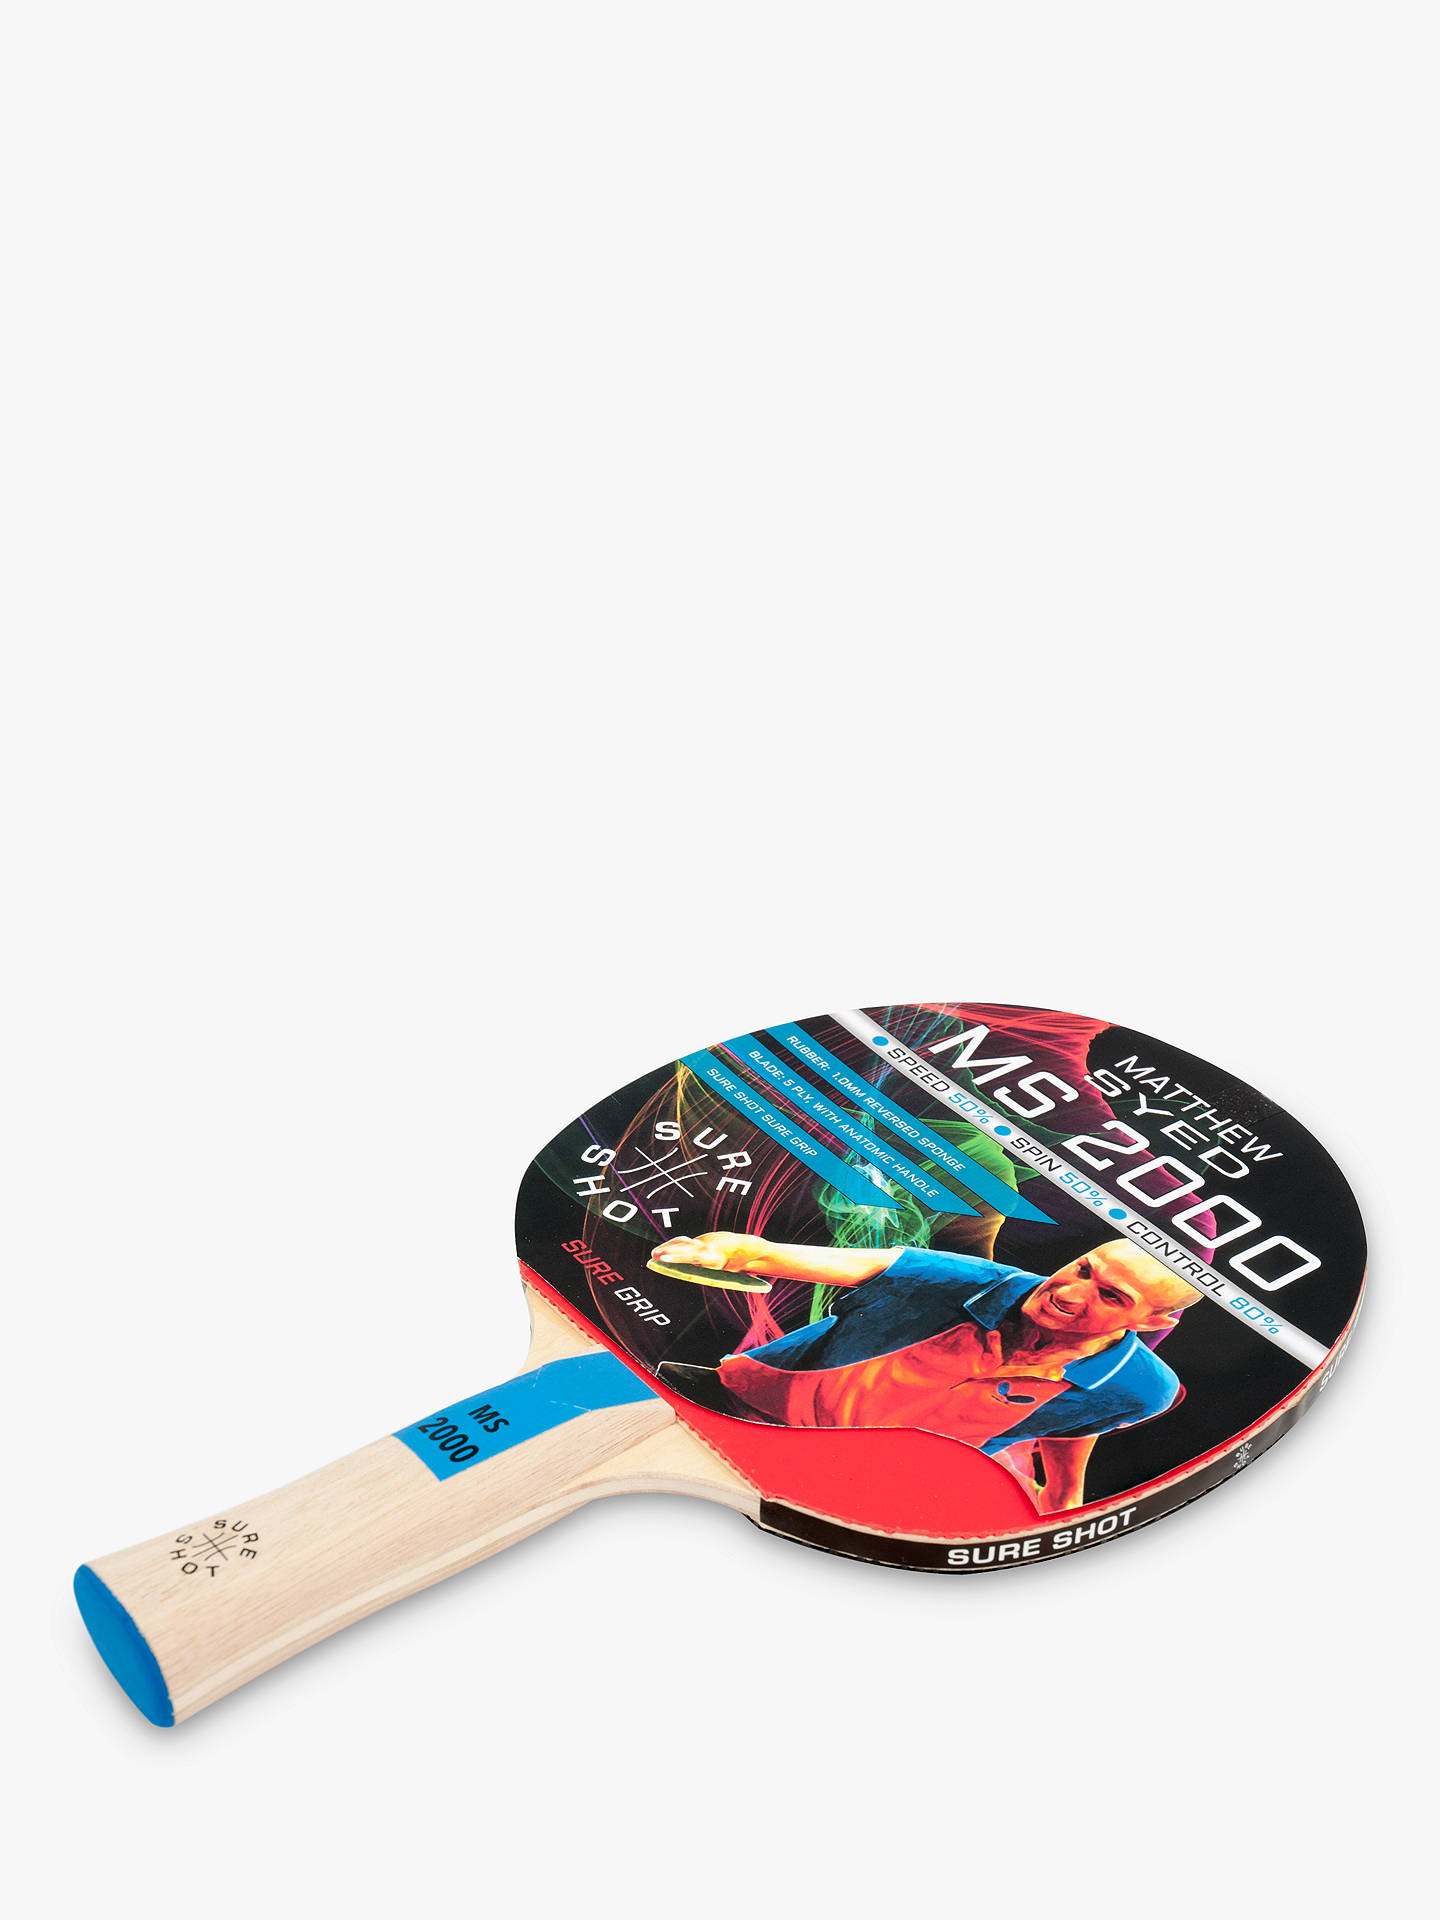 0741aa554c2 ... Buy Butterfly Sure Shot Matthew Syed Table Tennis Set Online at  johnlewis.com ...